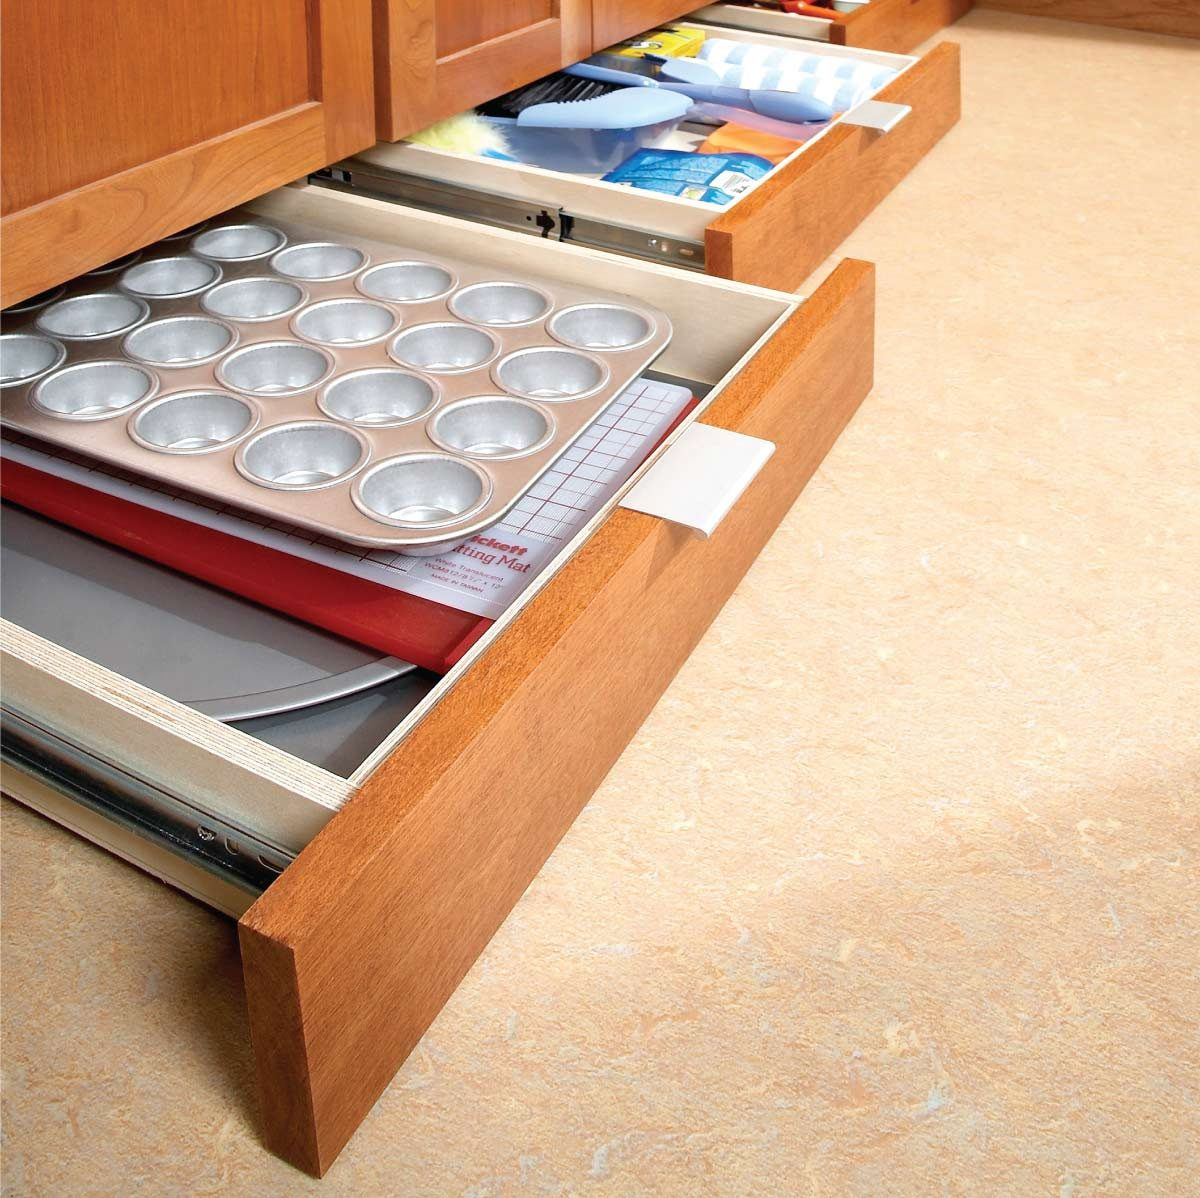 Ikea Metod Bank How To Build Under Cabinet Drawers Increase Kitchen